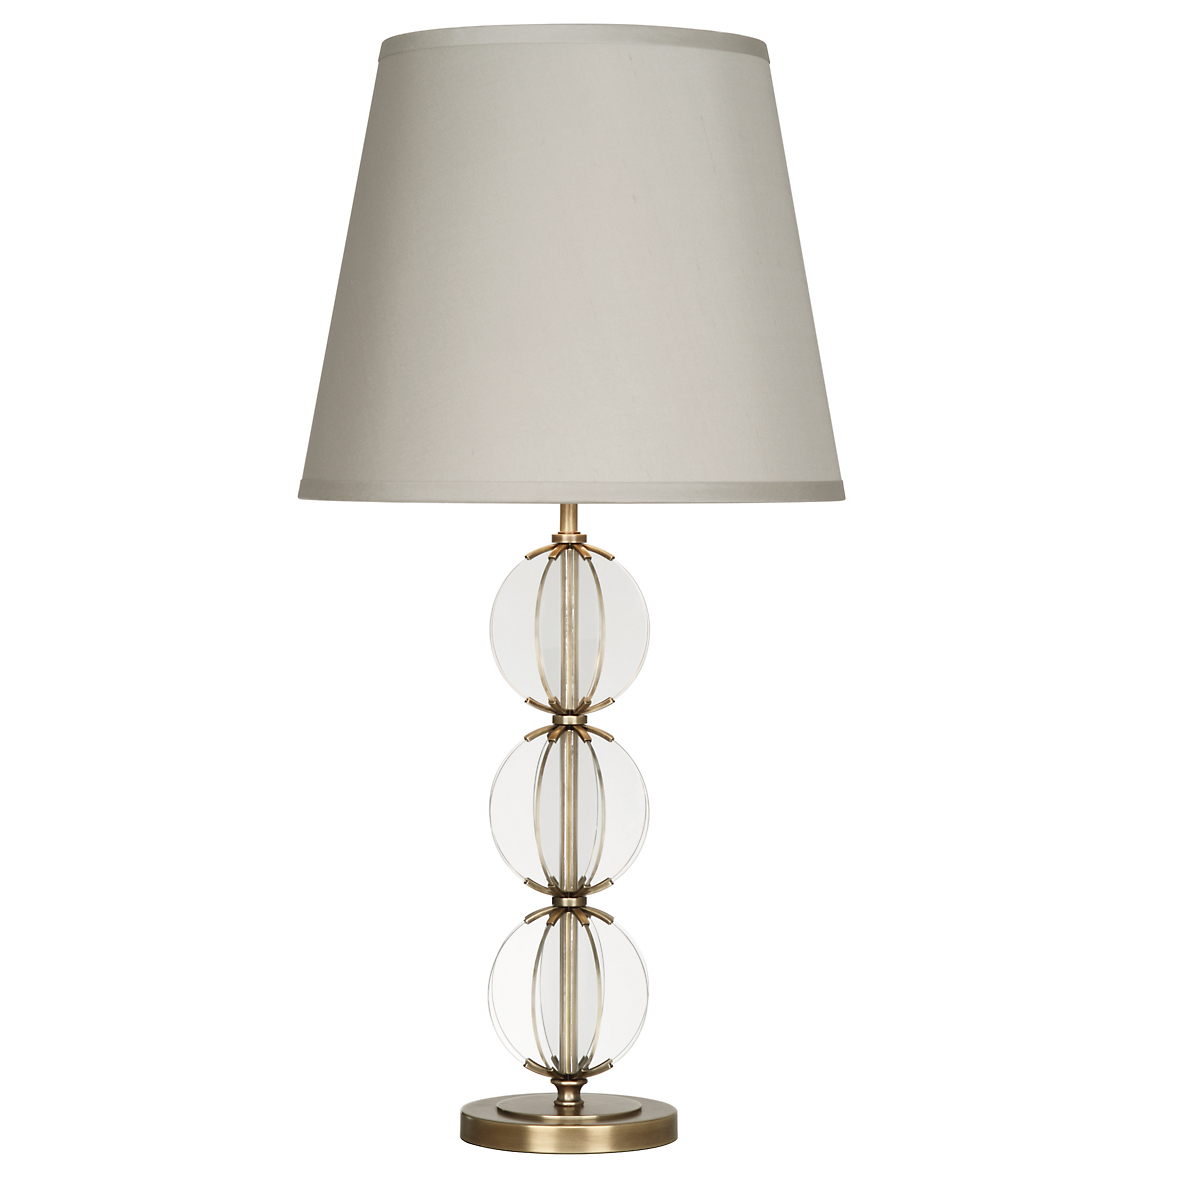 Latitude Table Lamp, Brass